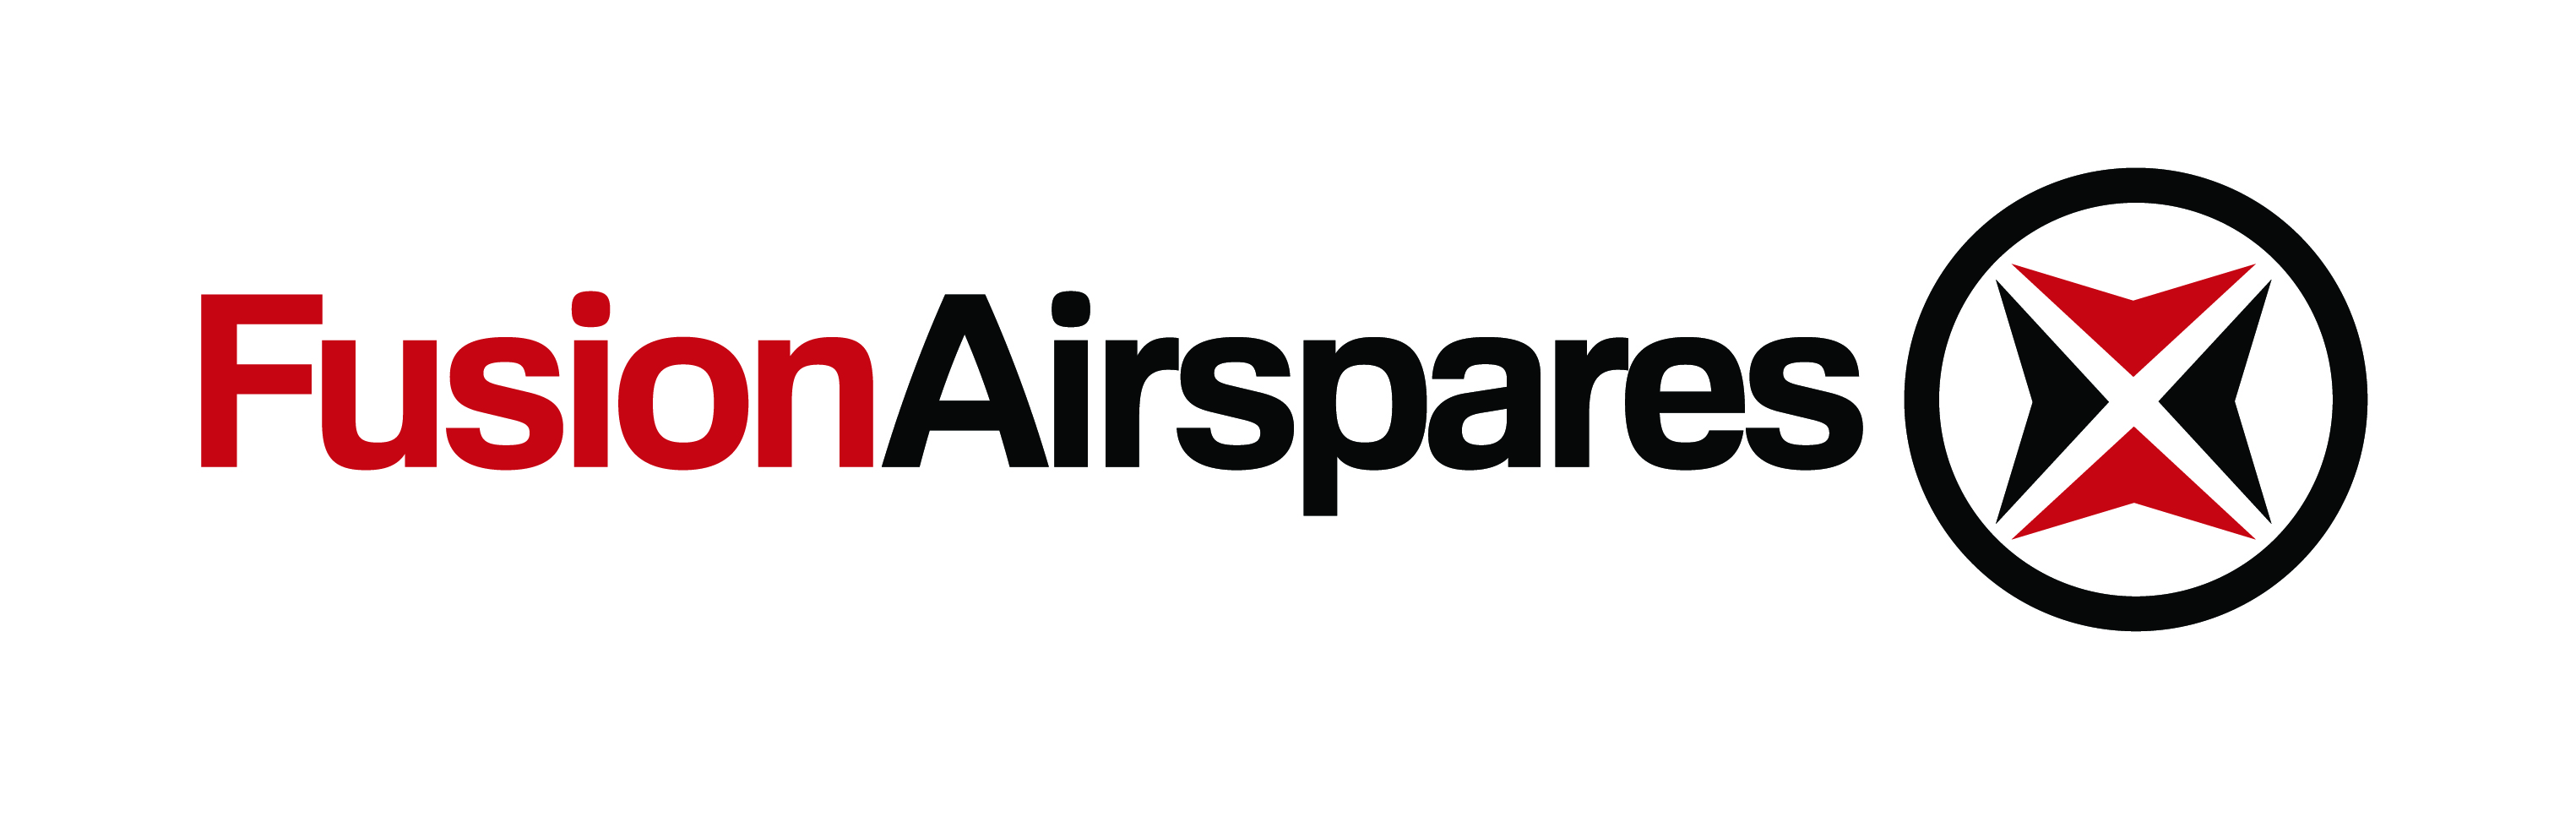 Fusion Airspares Logo